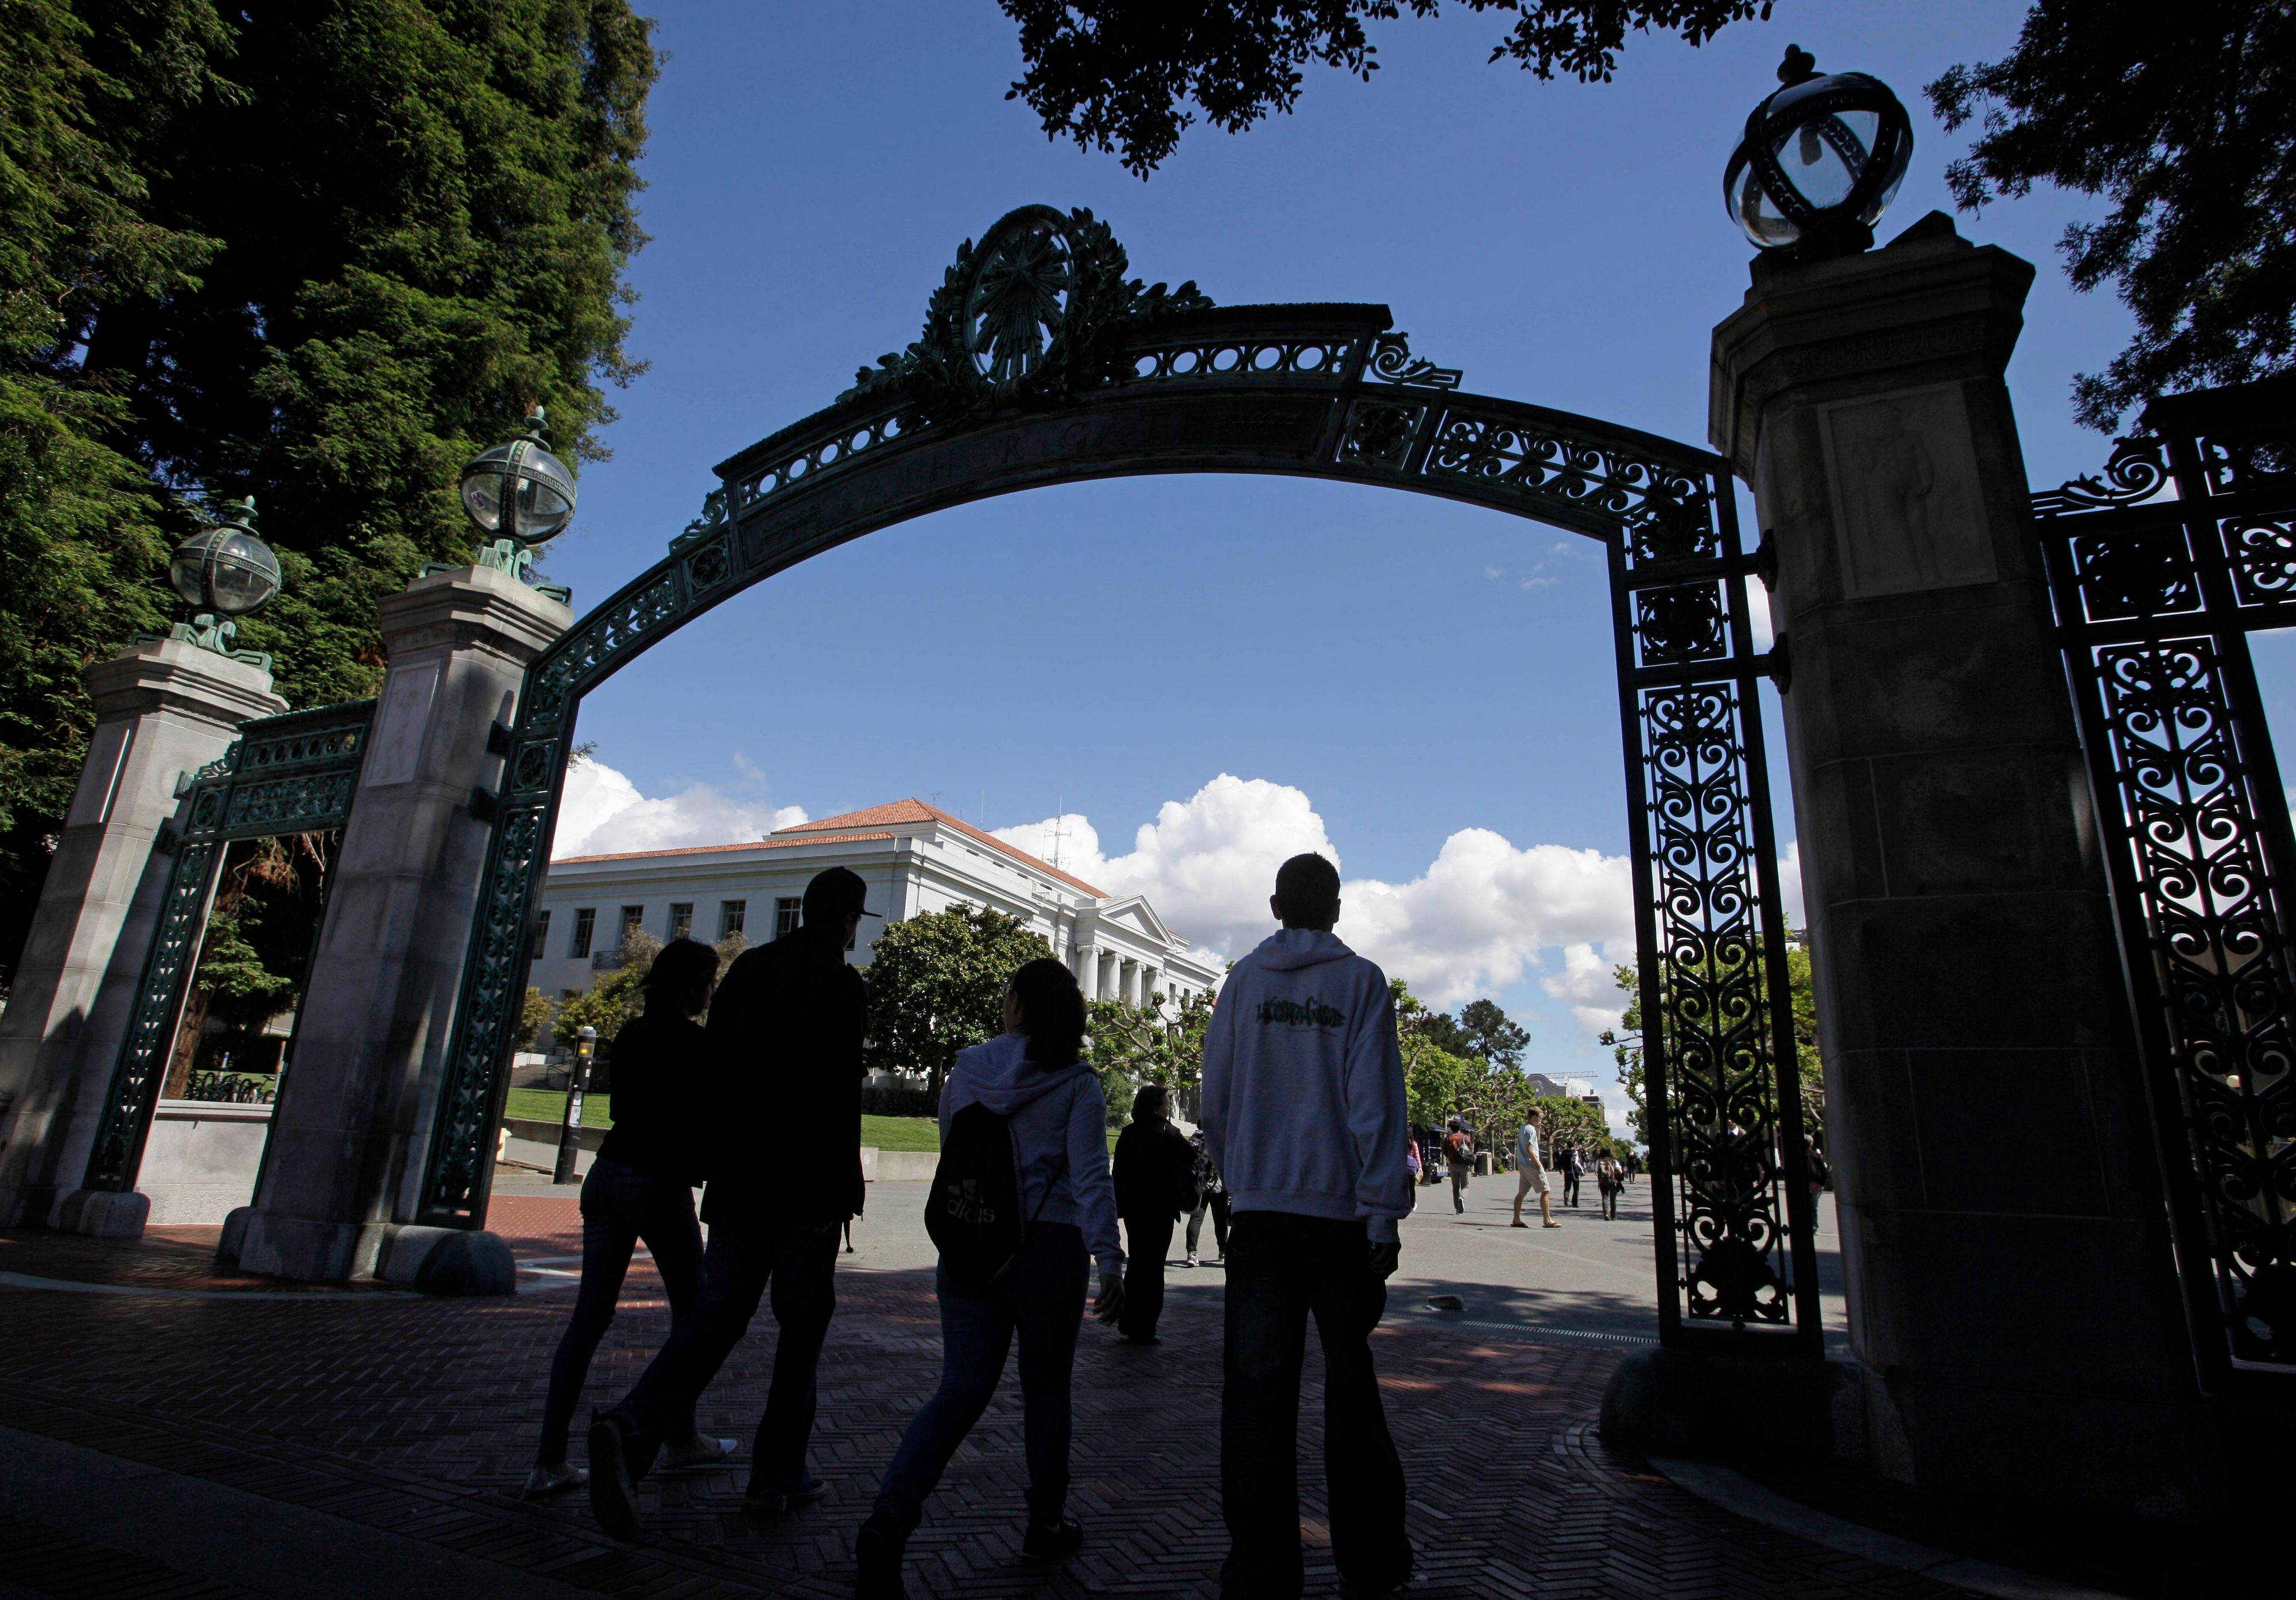 The Sather Gate is a well-known attraction on the University of California, Berkeley campus.